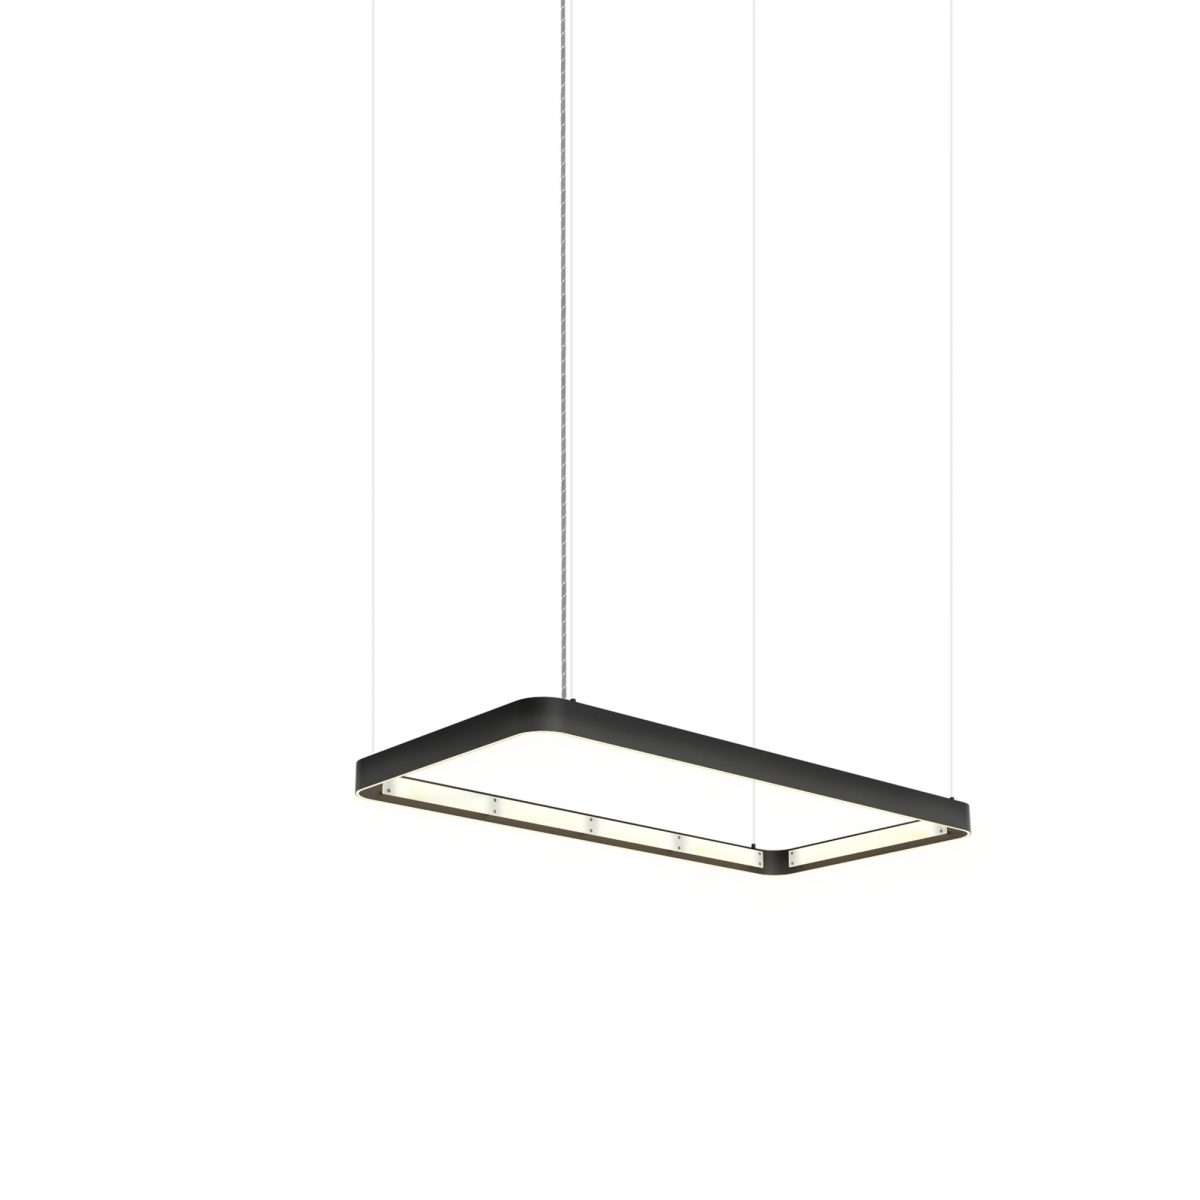 JSPR Eden Deco 50×100 Black Rectangle